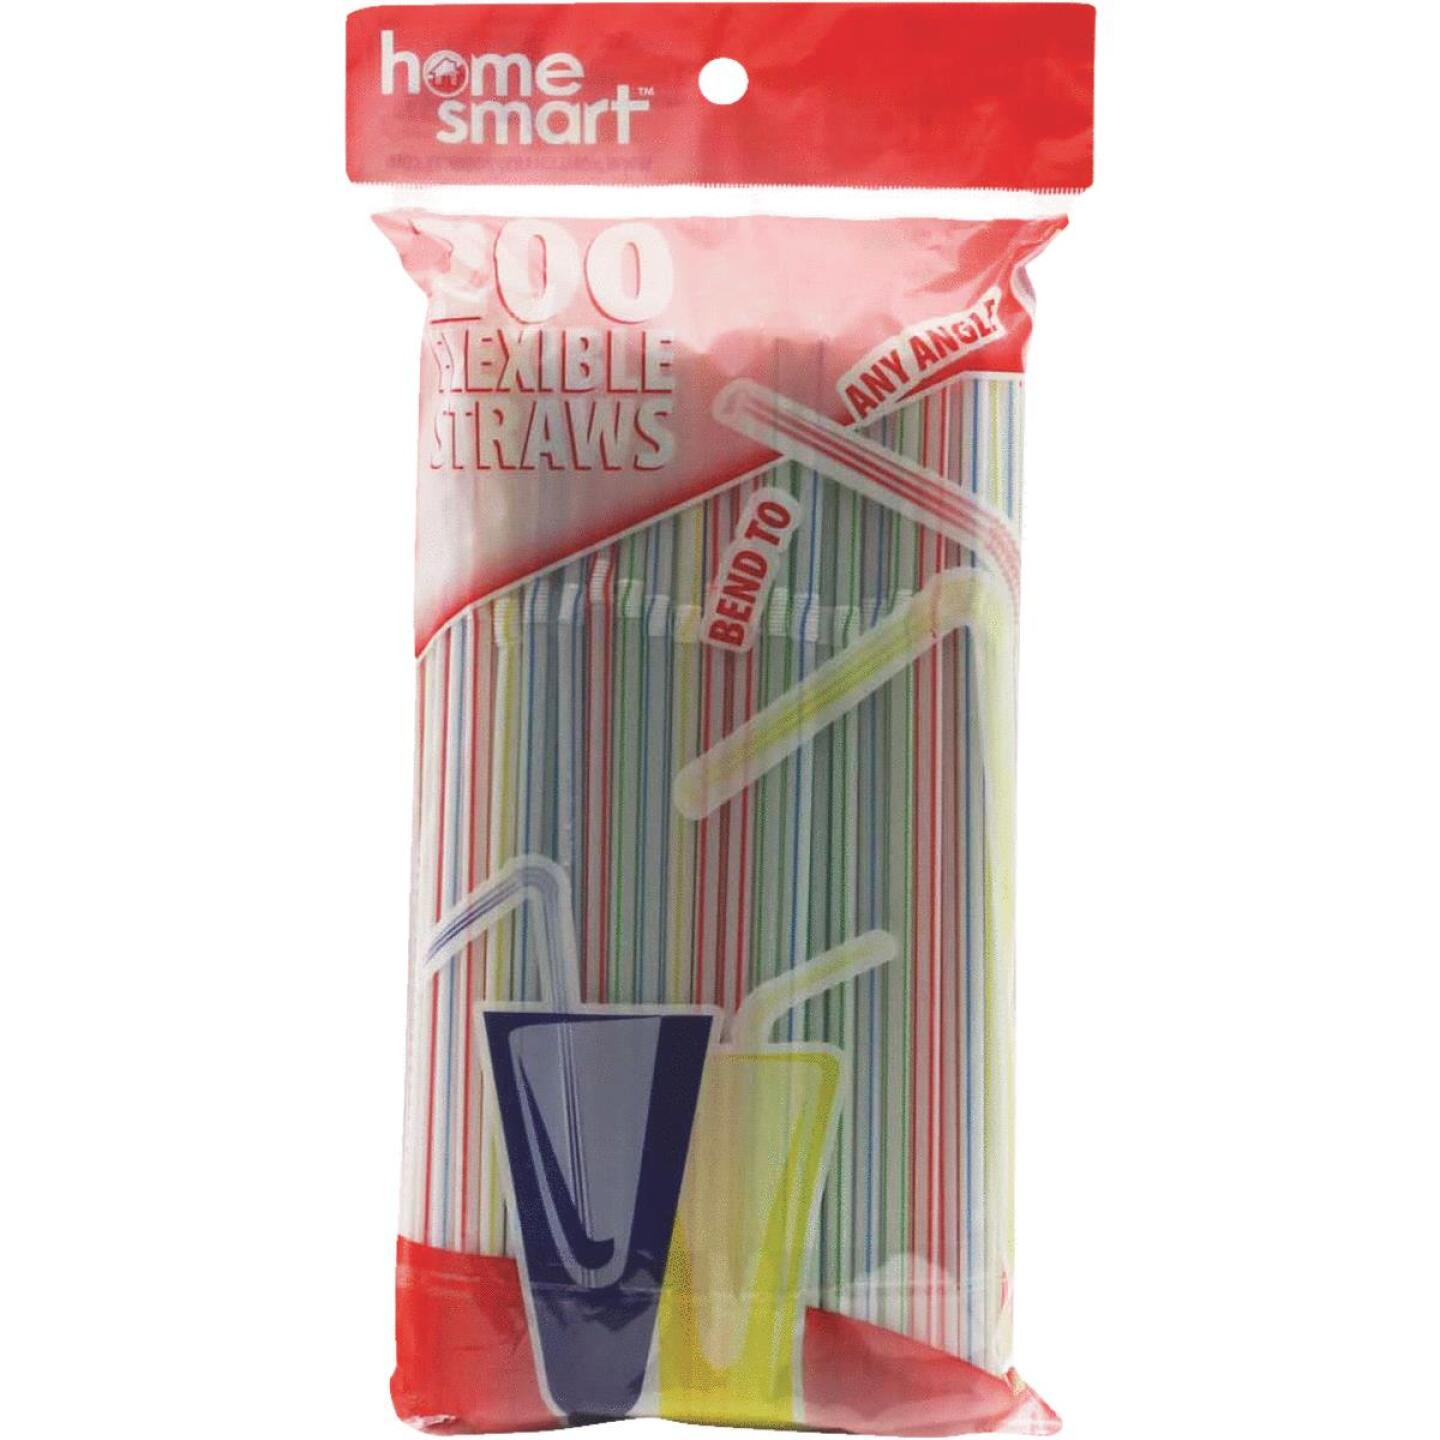 Home Smart Flexible Plastic Straws (200-Count) Image 2